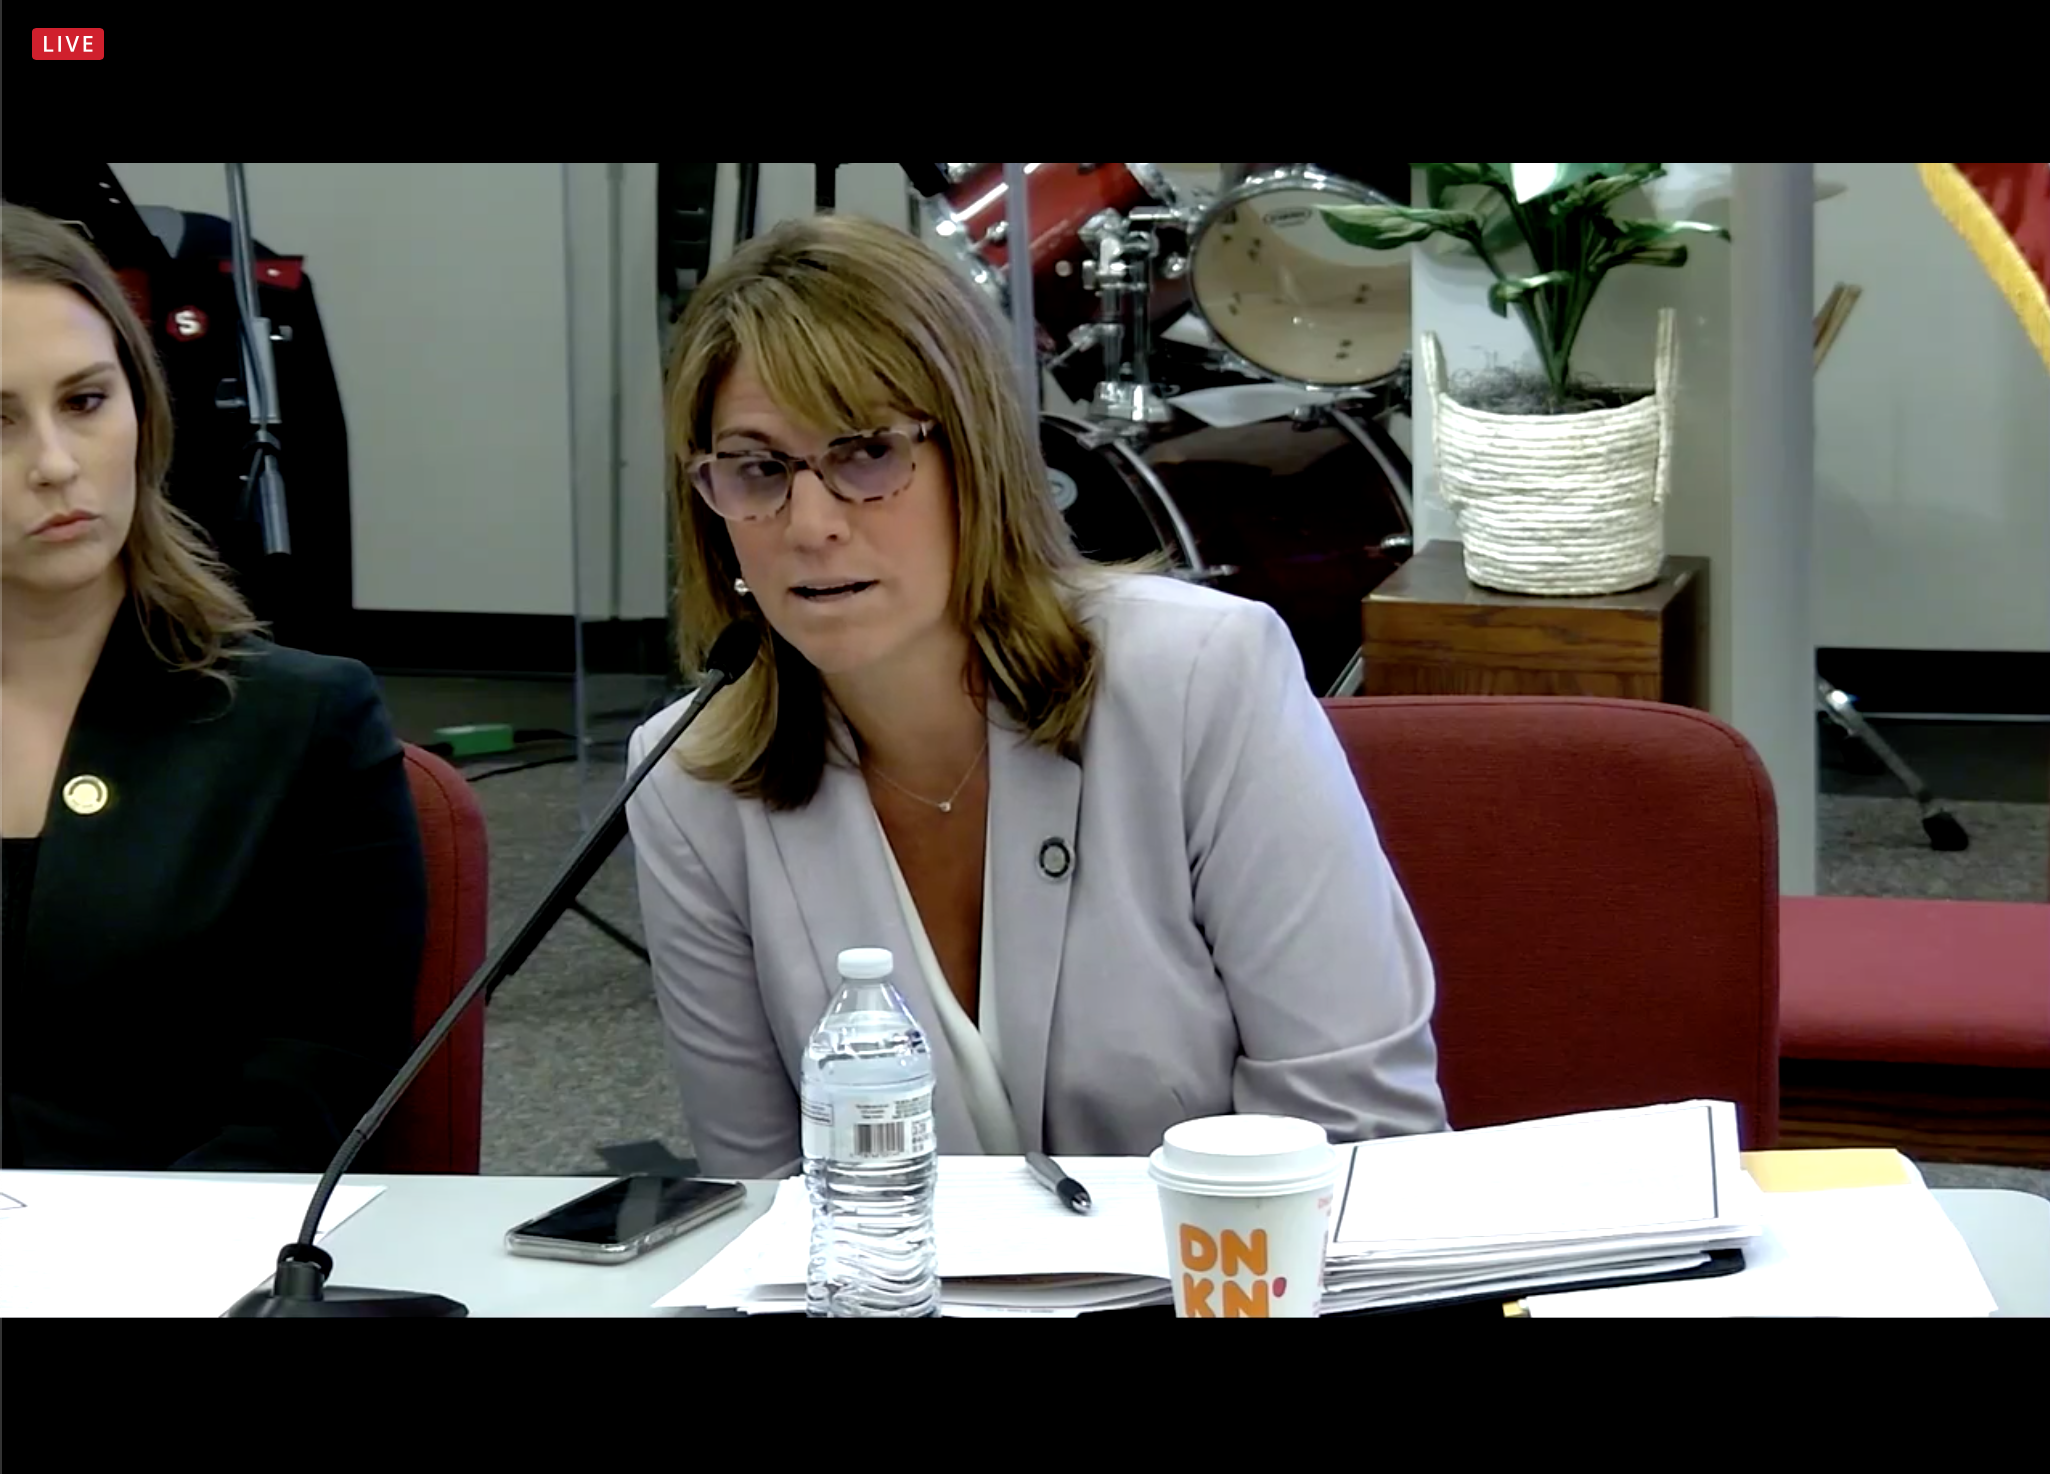 Pennsylvania Rep. Carrie Lewis DelRosso, R-Oakmont, called for improvements in the state's anti-blight programs at a hearing in Brackenridge on June 3, 2021. (Screenshot)